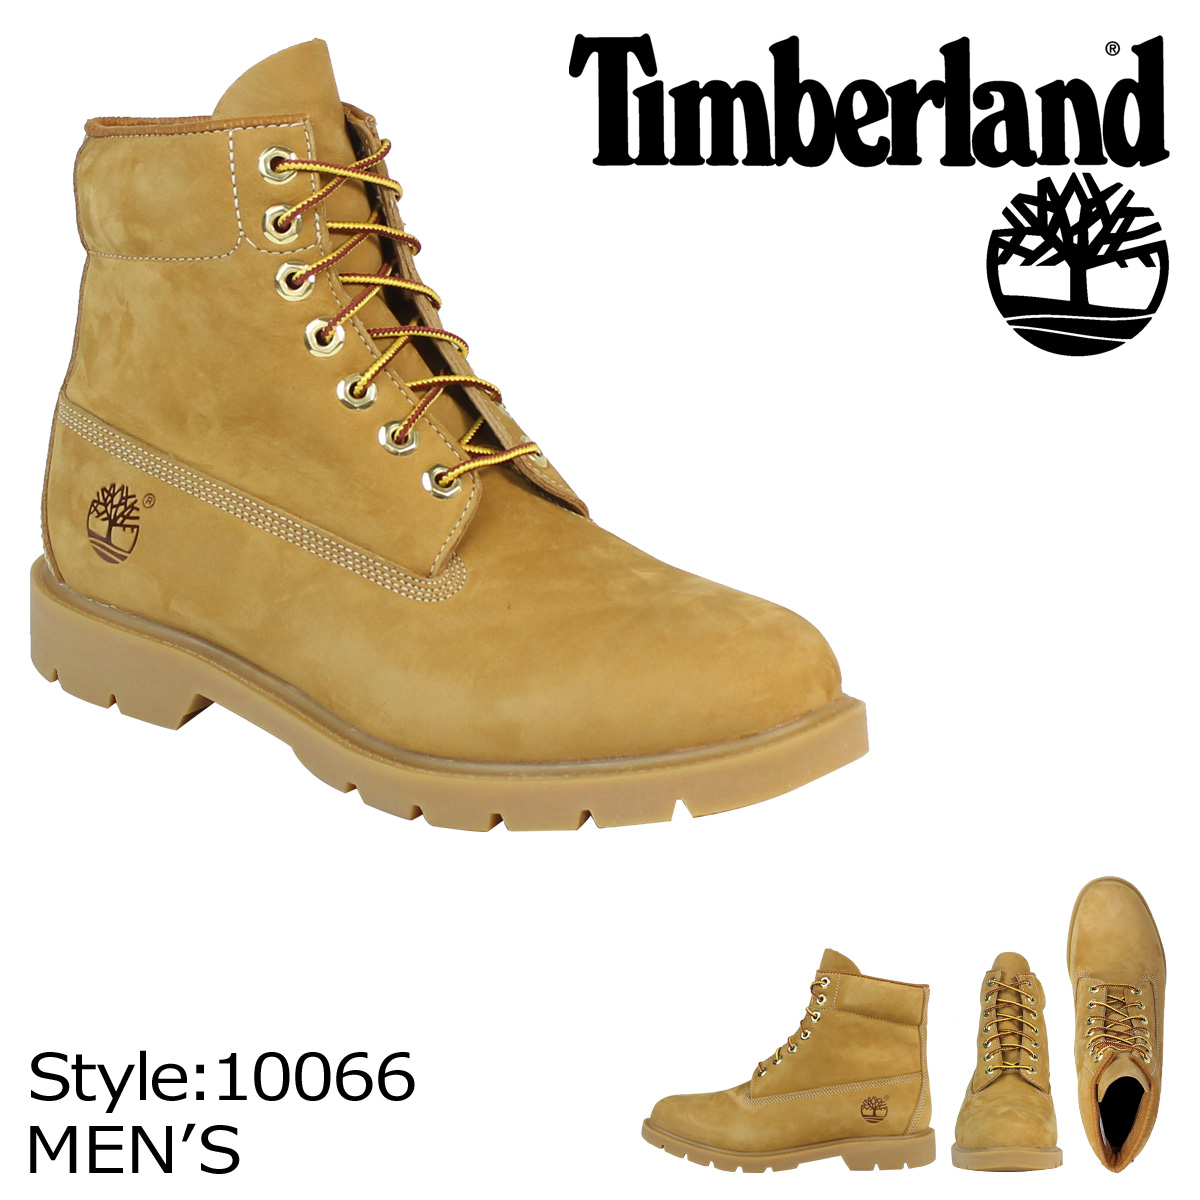 Timberland Timberland 6 inch basic waterproof boots 6 inch Basic Waterproof Boot nubuck mens 10066 wheat [11 14 Add in stock] [regular]